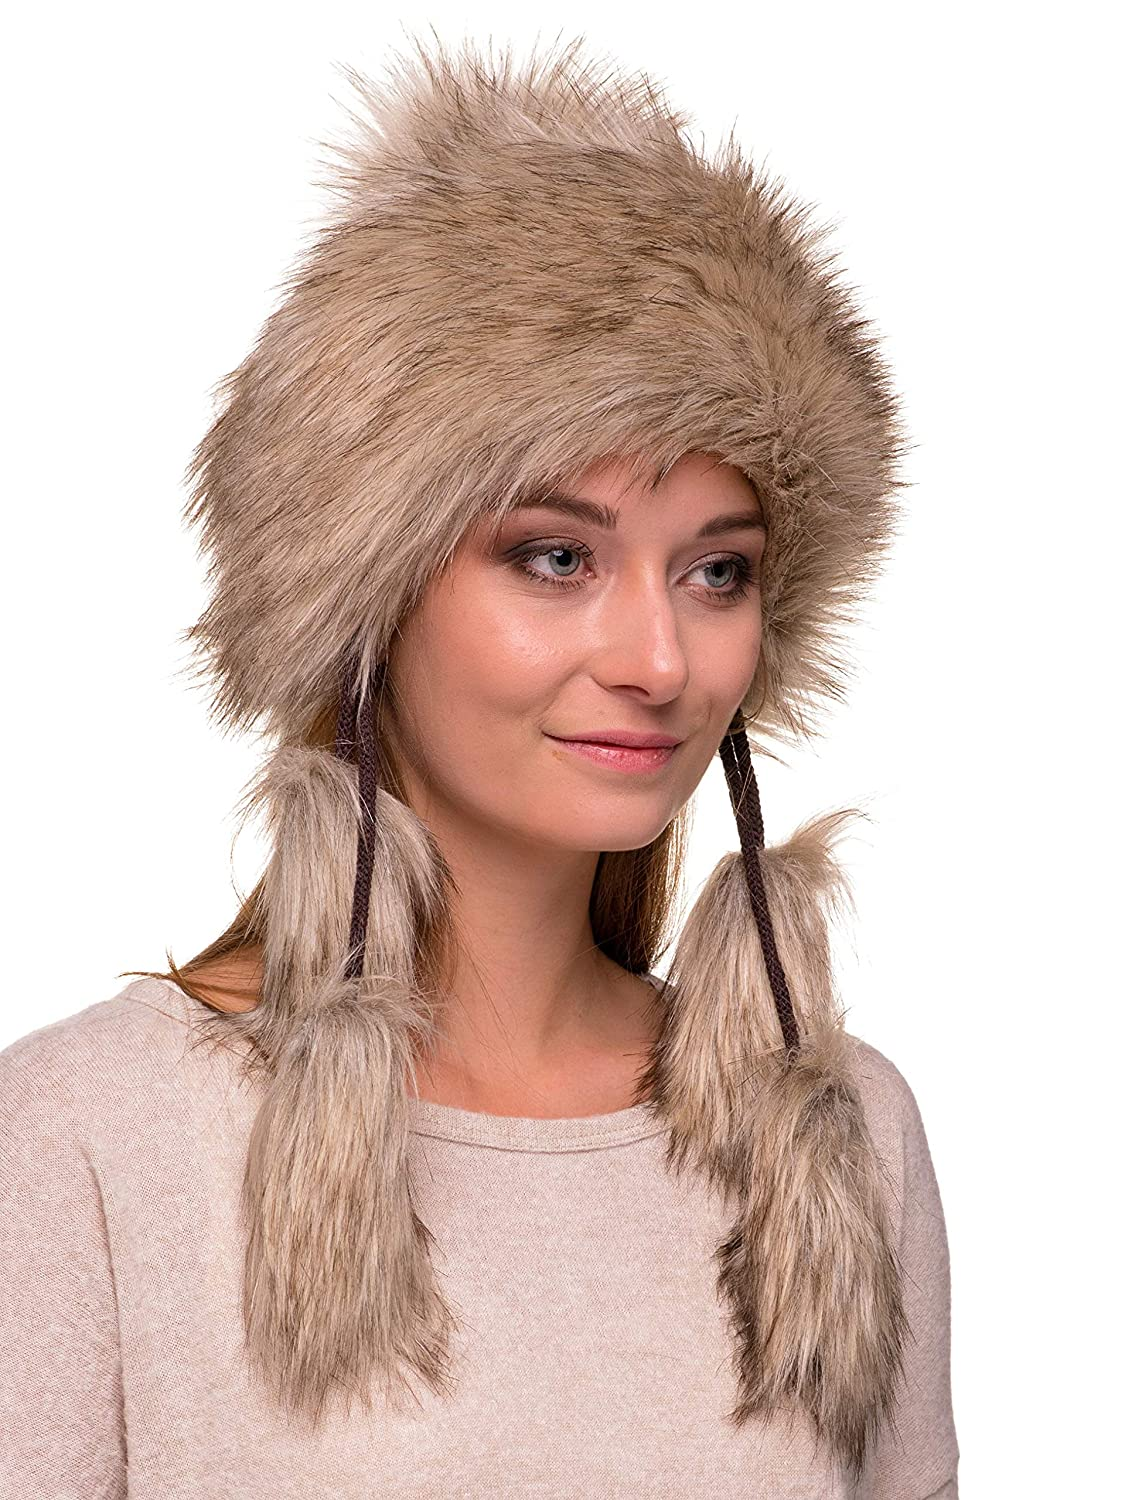 1d8858a84d4 Futrzane Mongolian Faux Fox Fur Winter Hat Women Russian Cossack Pompom  Futrzane-mongolka-15 larger image